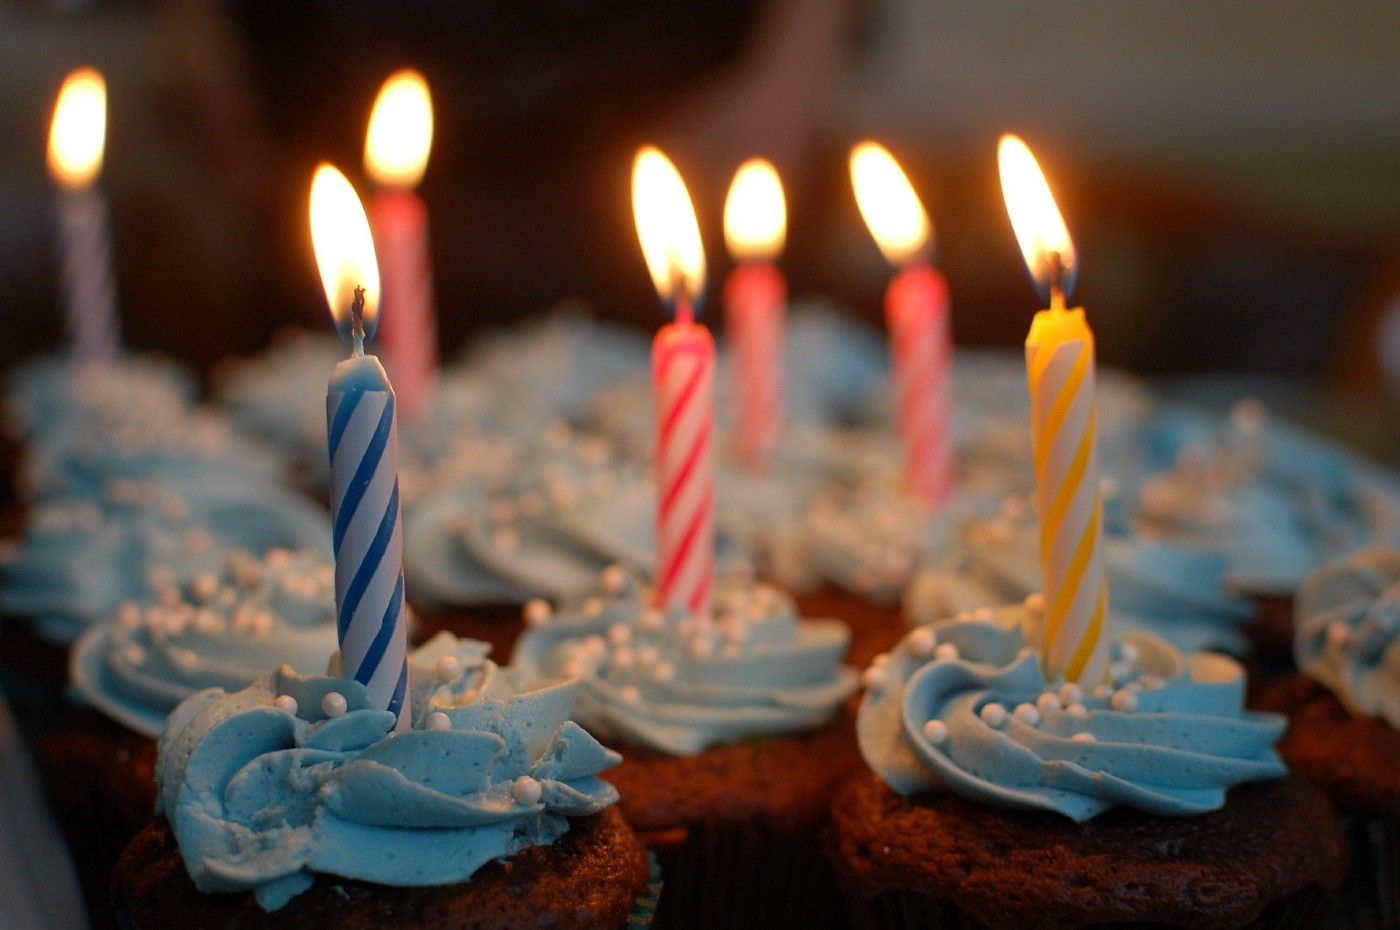 Cupcakes with blue swirled frosting and colourful lit birthday candles